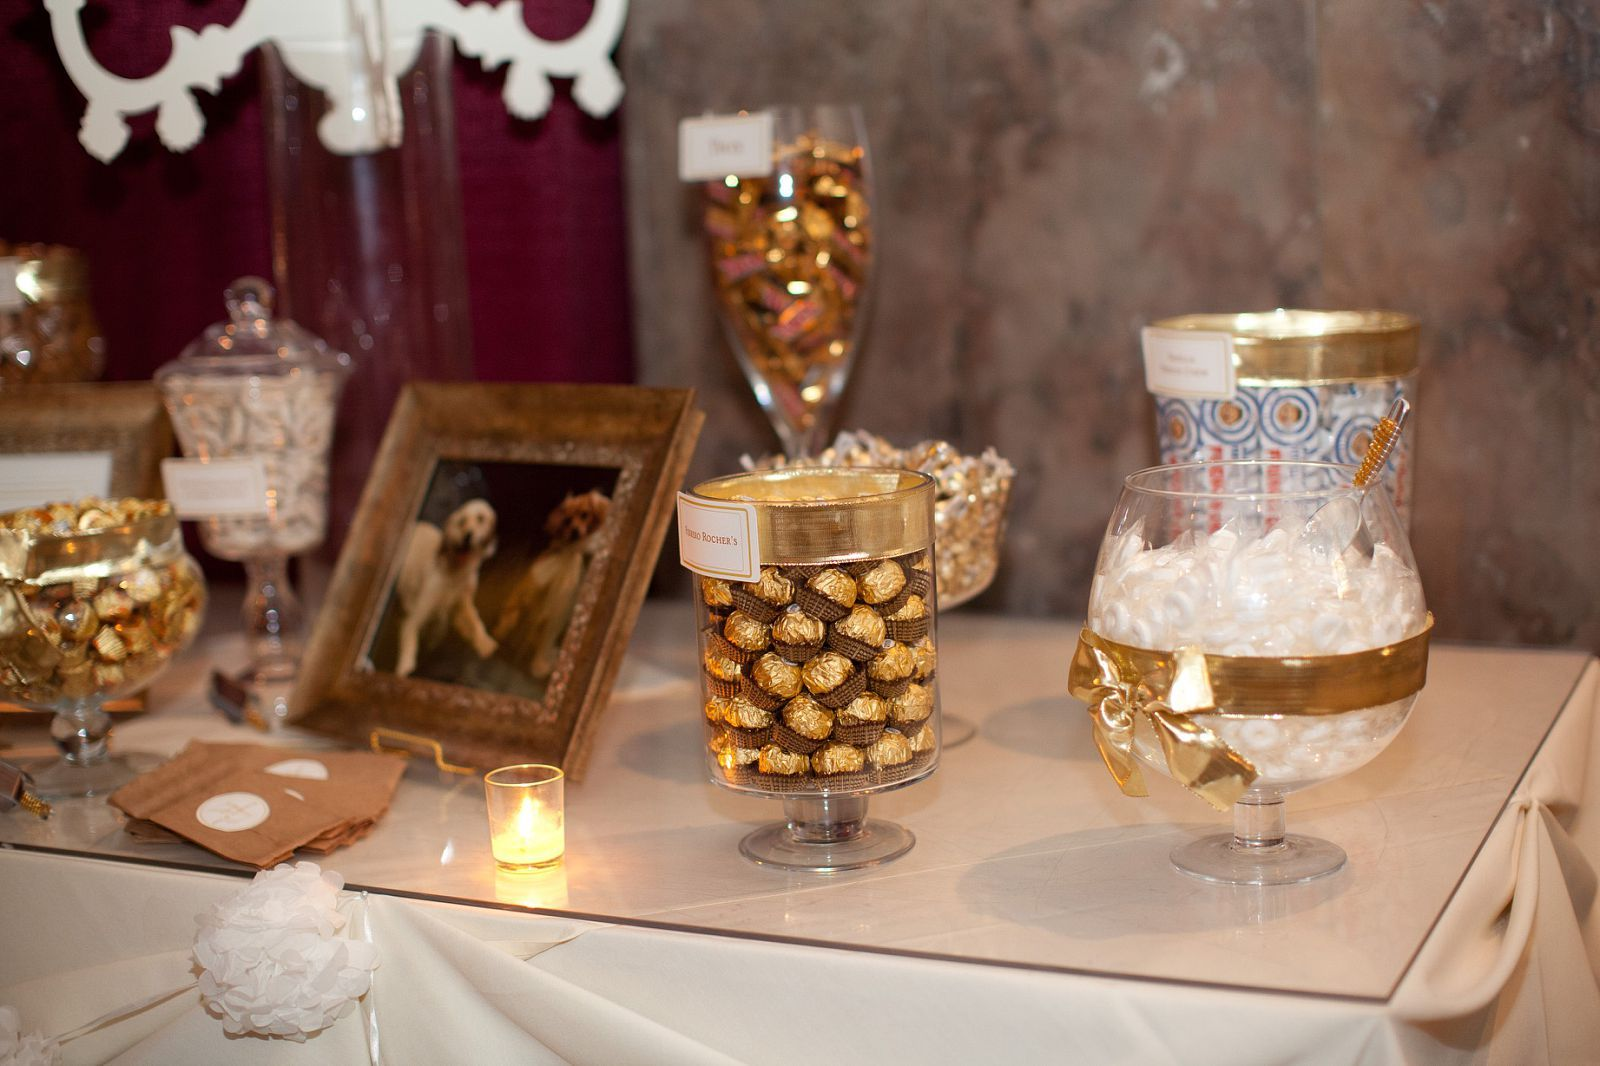 Sweet amp sparkly wedding candy buffet pictures to pin on pinterest - Gold Candy Bar For Wedding All Labels And Signs Are Courtesy Of Design The